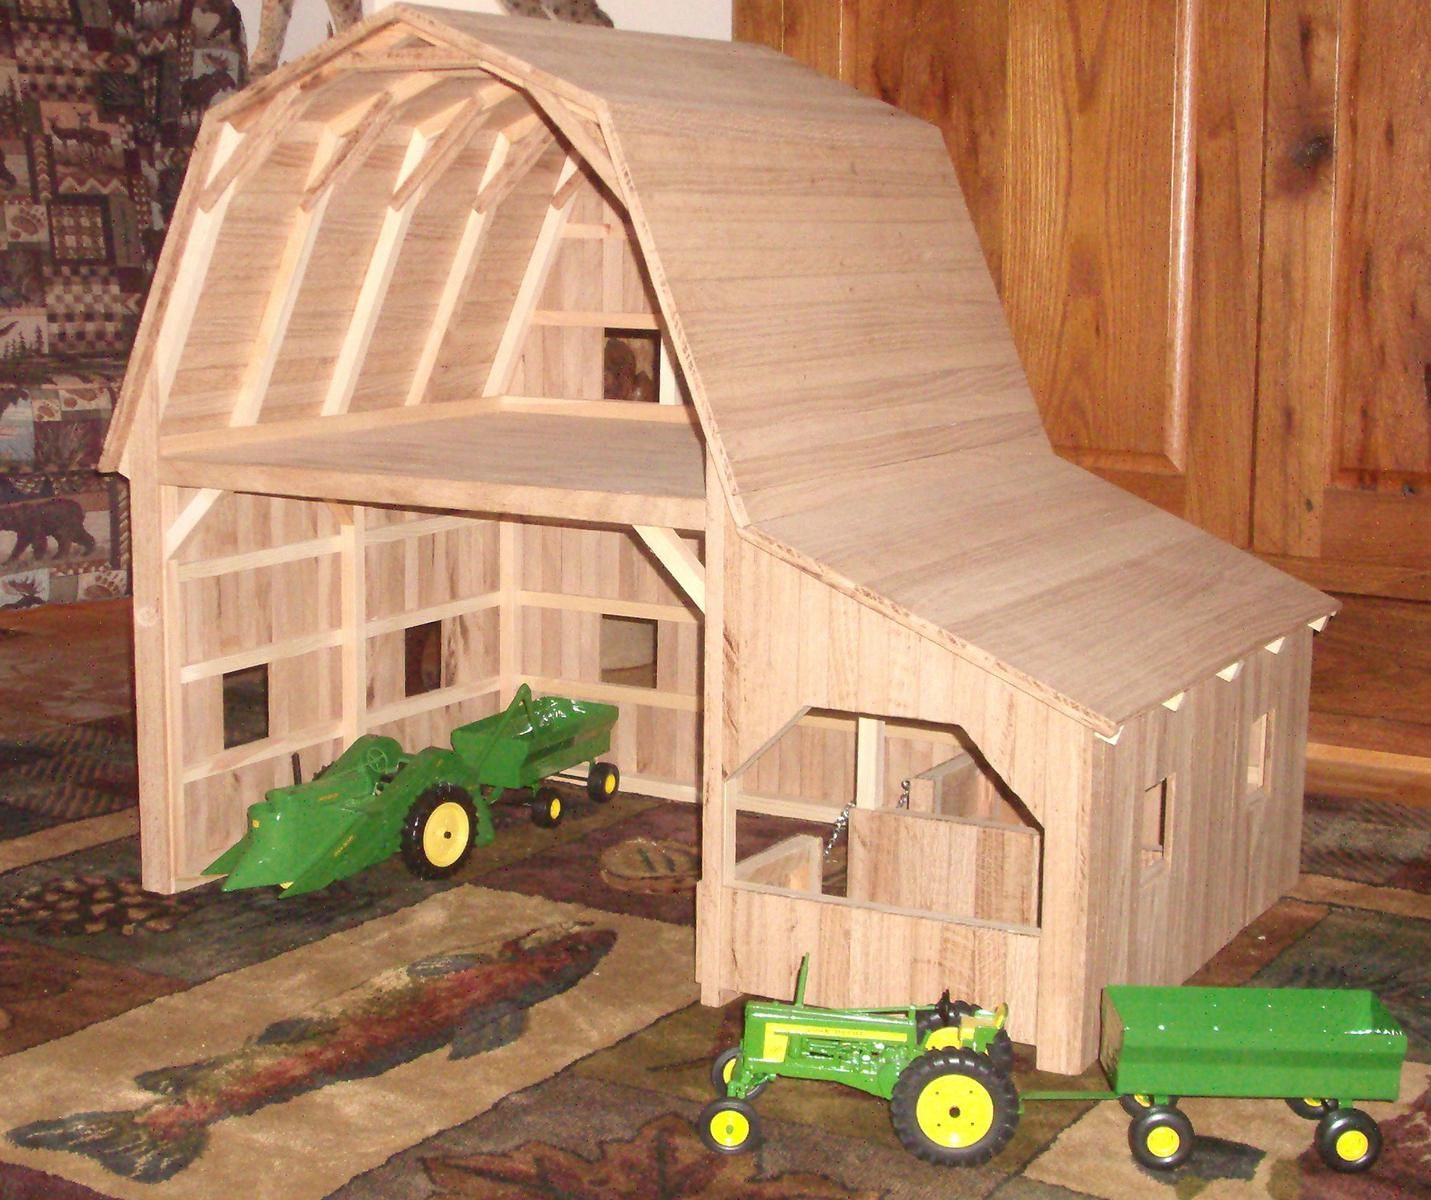 custom made wooden toy barn #3 this is my all time favorite